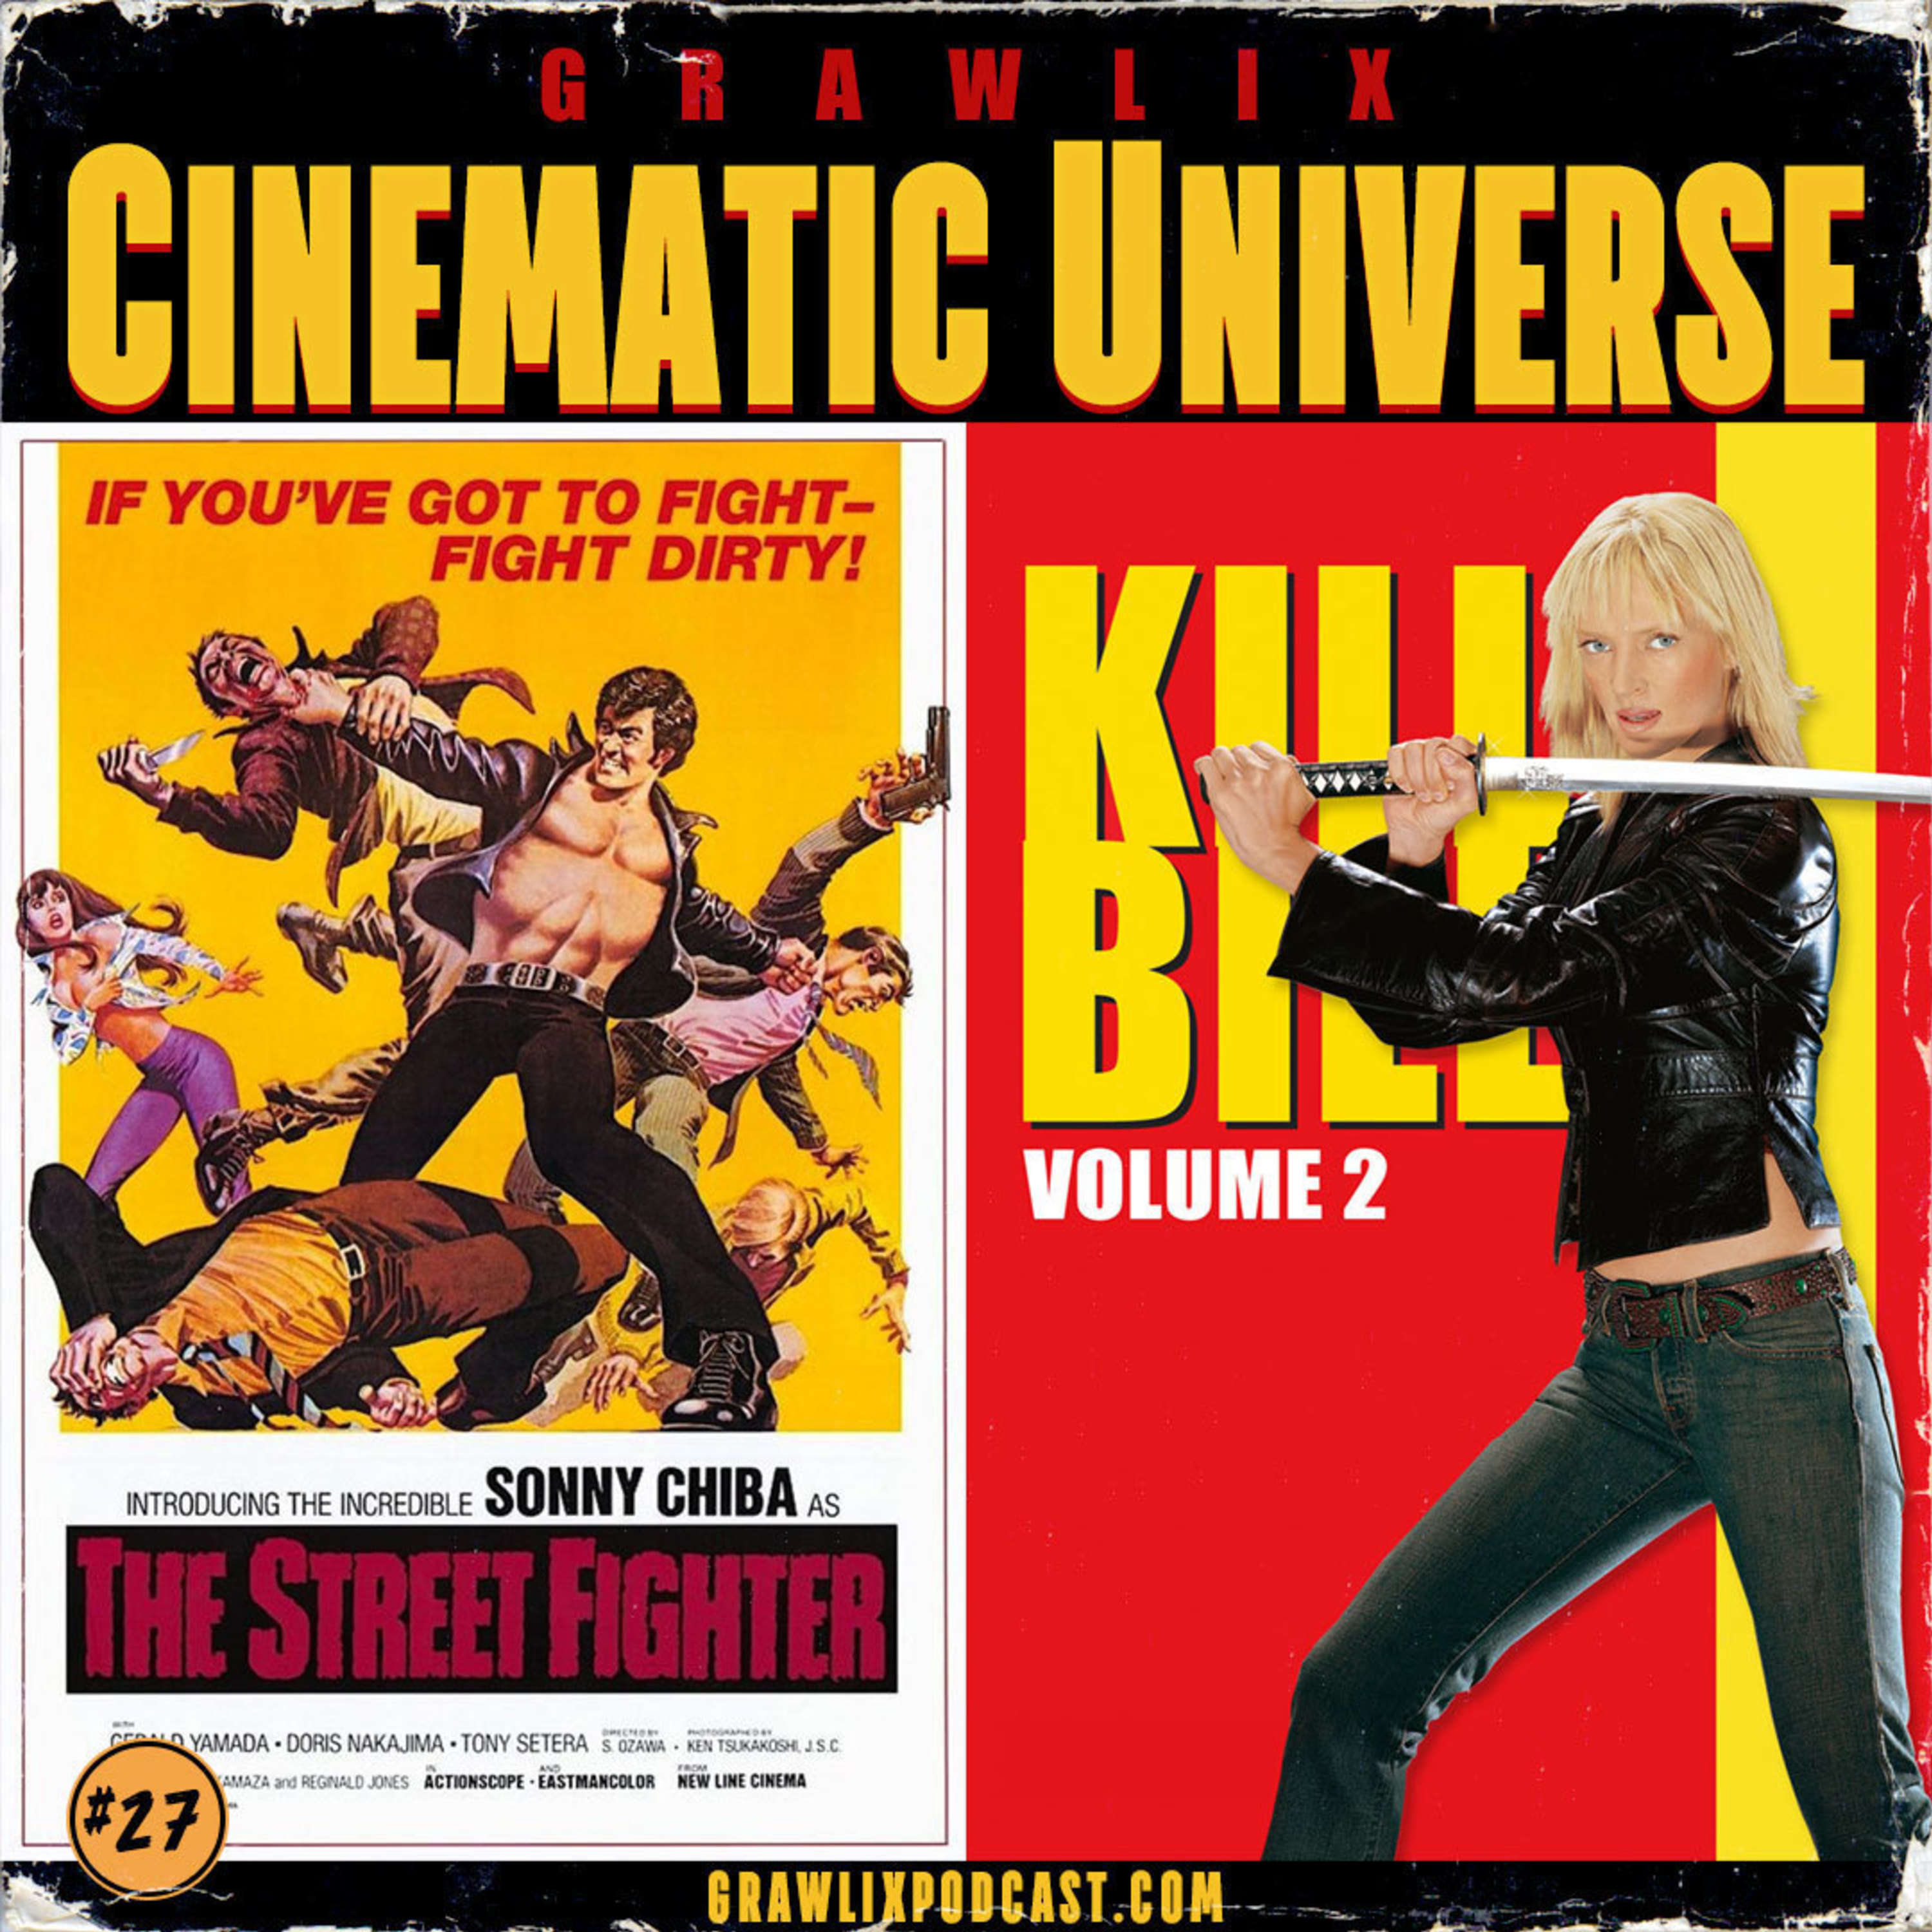 The Street Fighter & Kill Bill Vol. 2